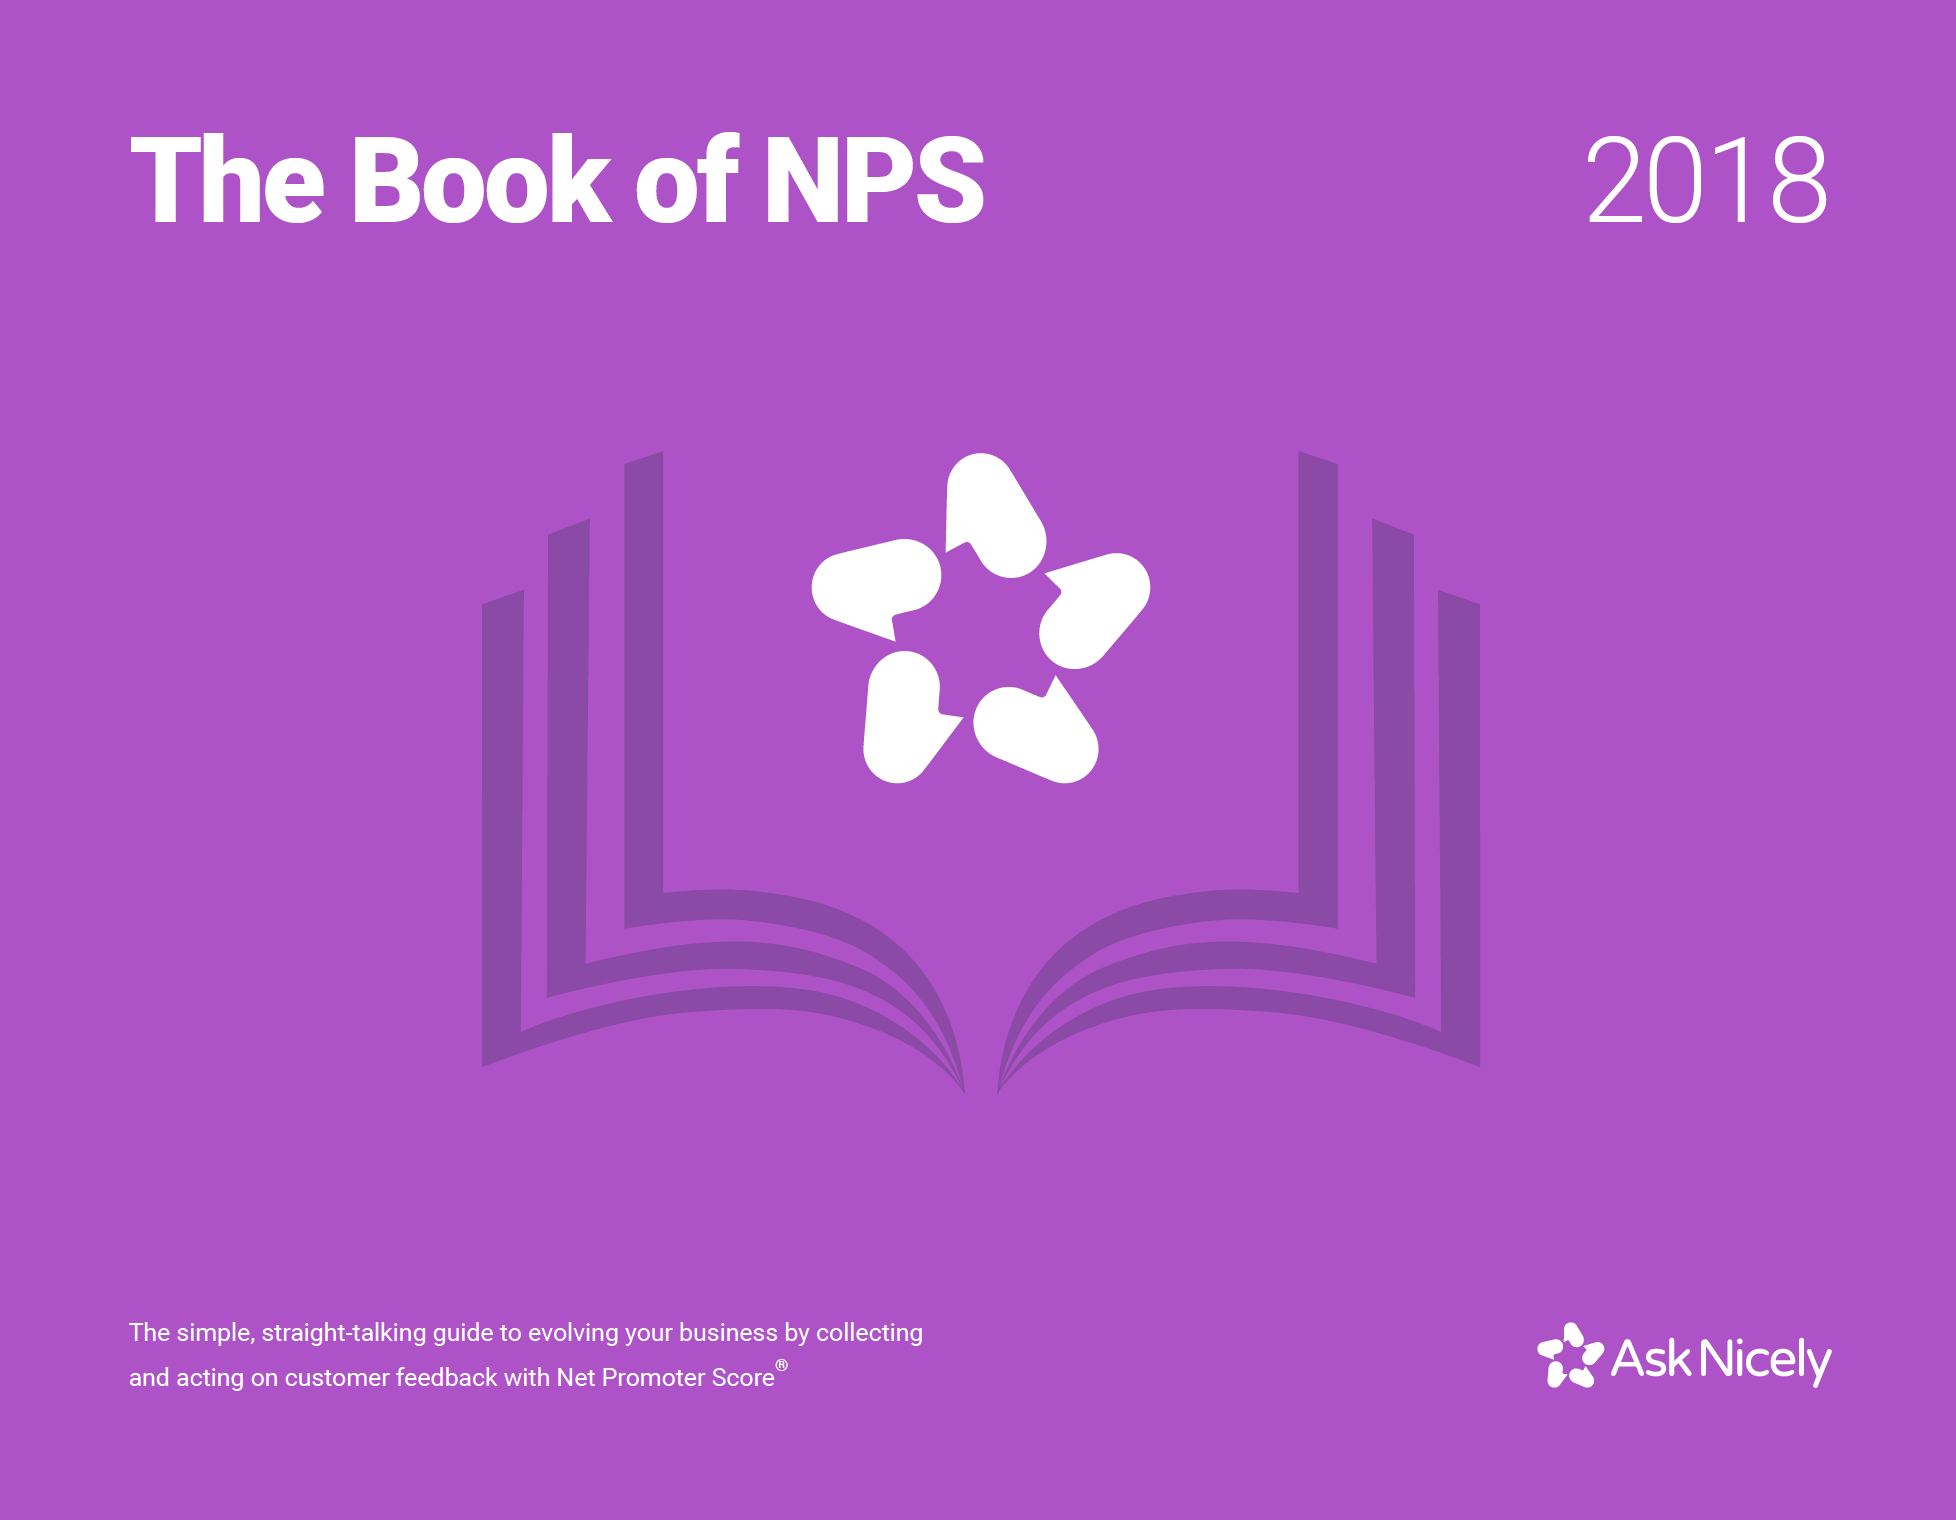 BRAND:  AskNicely   ROLE:  Content and Community Manager   SUMMARY:  Worked with head of design to concept The Book of NPS, which was AskNicely's definitive content piece on the subject of Net Promoter Score.